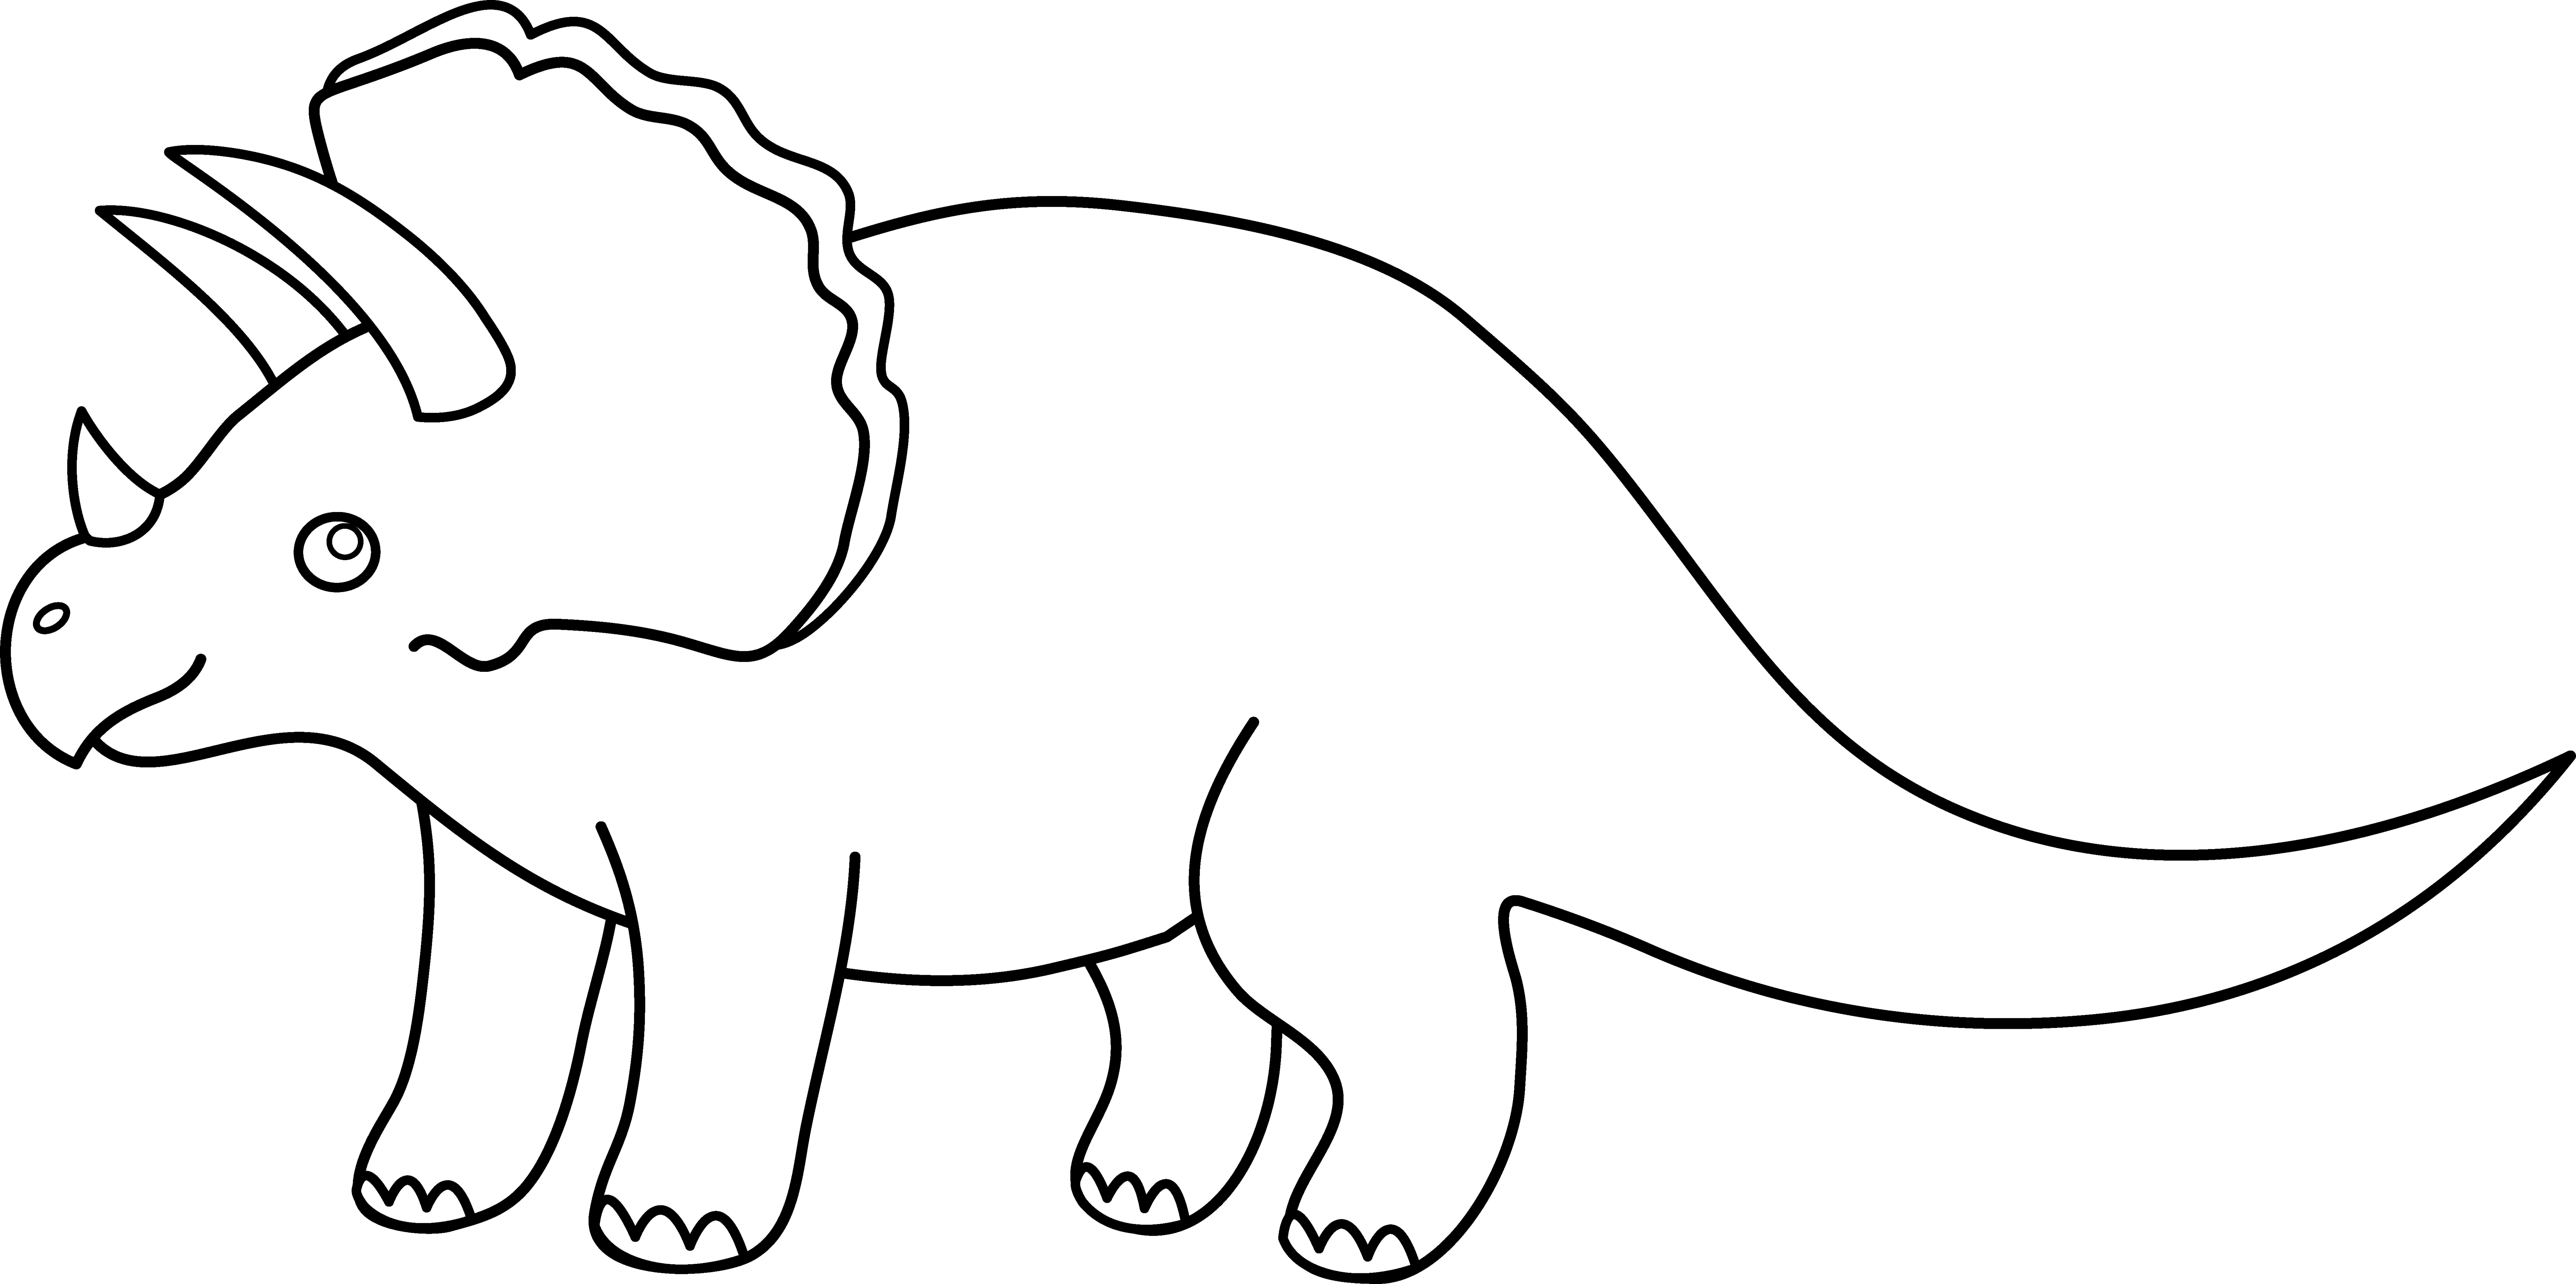 dinosaur printables dinosaurs clipart traceable dinosaurs traceable dinosaur printables